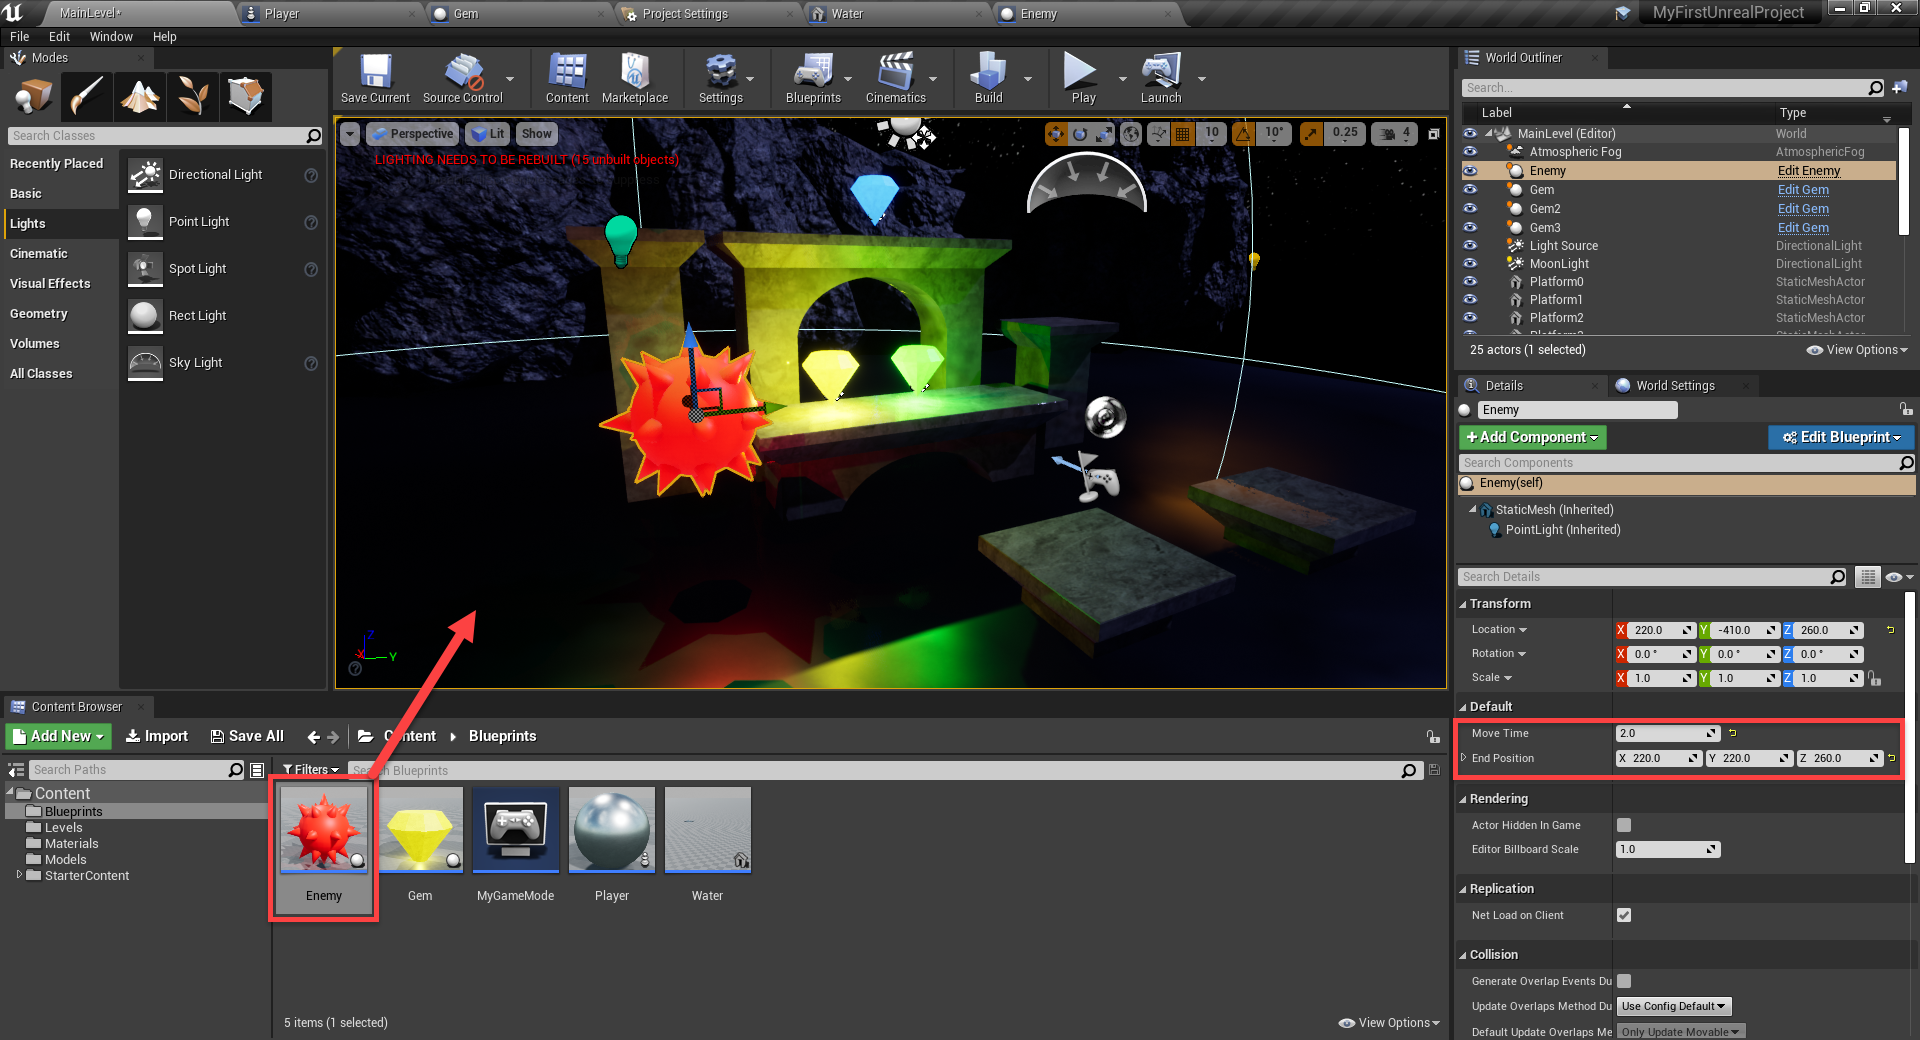 Enemy added to Unreal Engine project